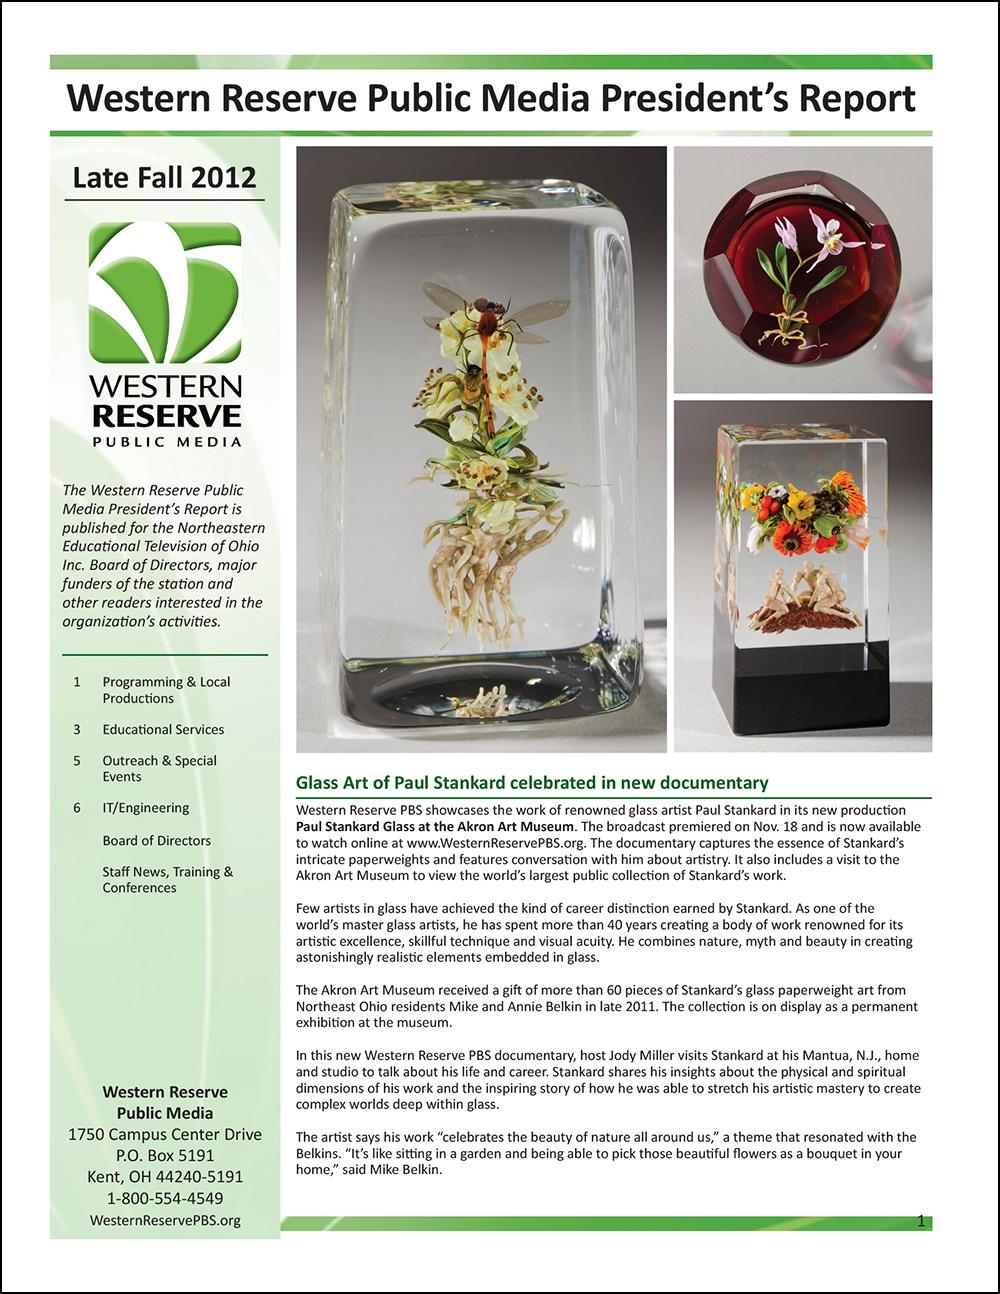 Late Fall 2012 - Volume 6, Issue 4